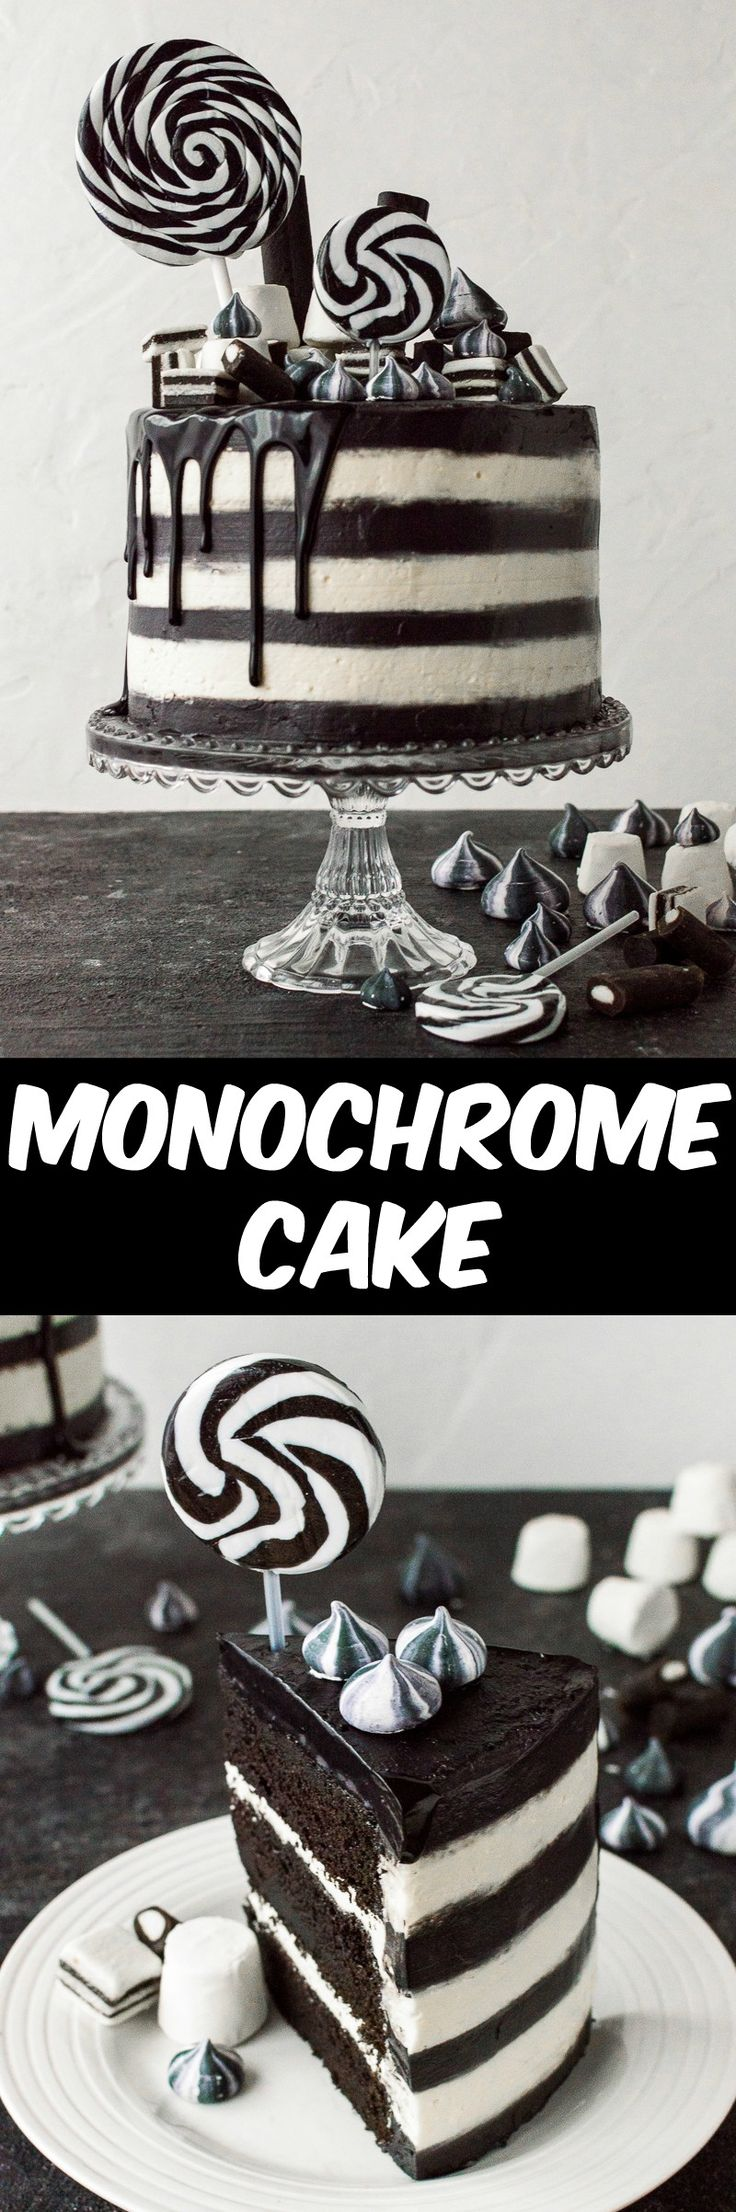 Monochrome cake (aka Beetlejuice cake) - a stylish black and white stripy chocolate and vanilla cake. Perfect for a classy Halloween party.